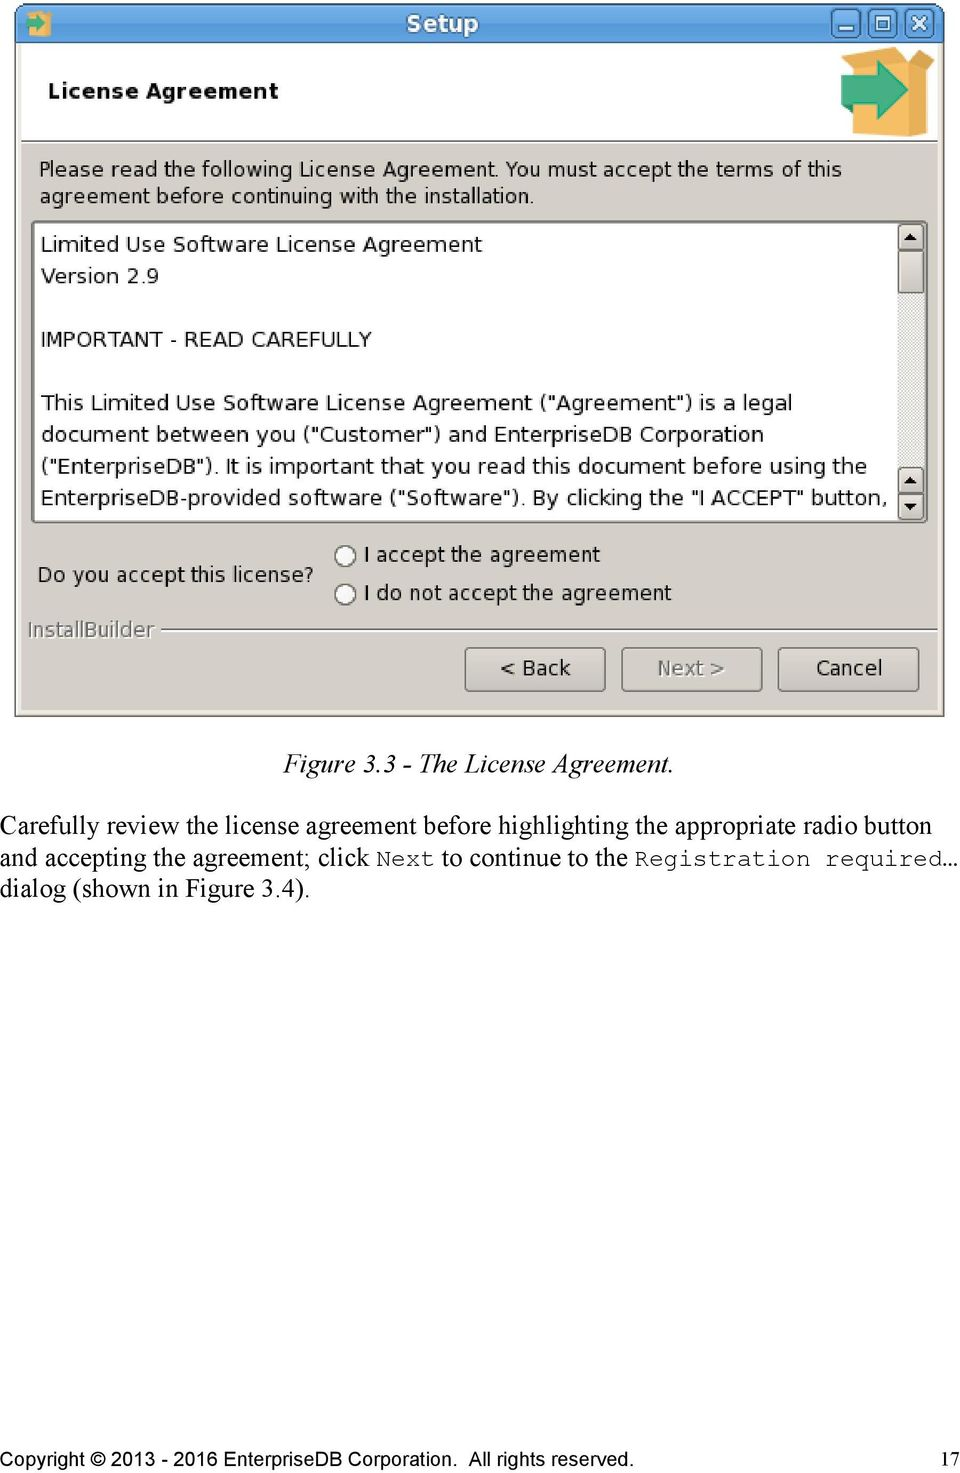 radio button and accepting the agreement; click Next to continue to the